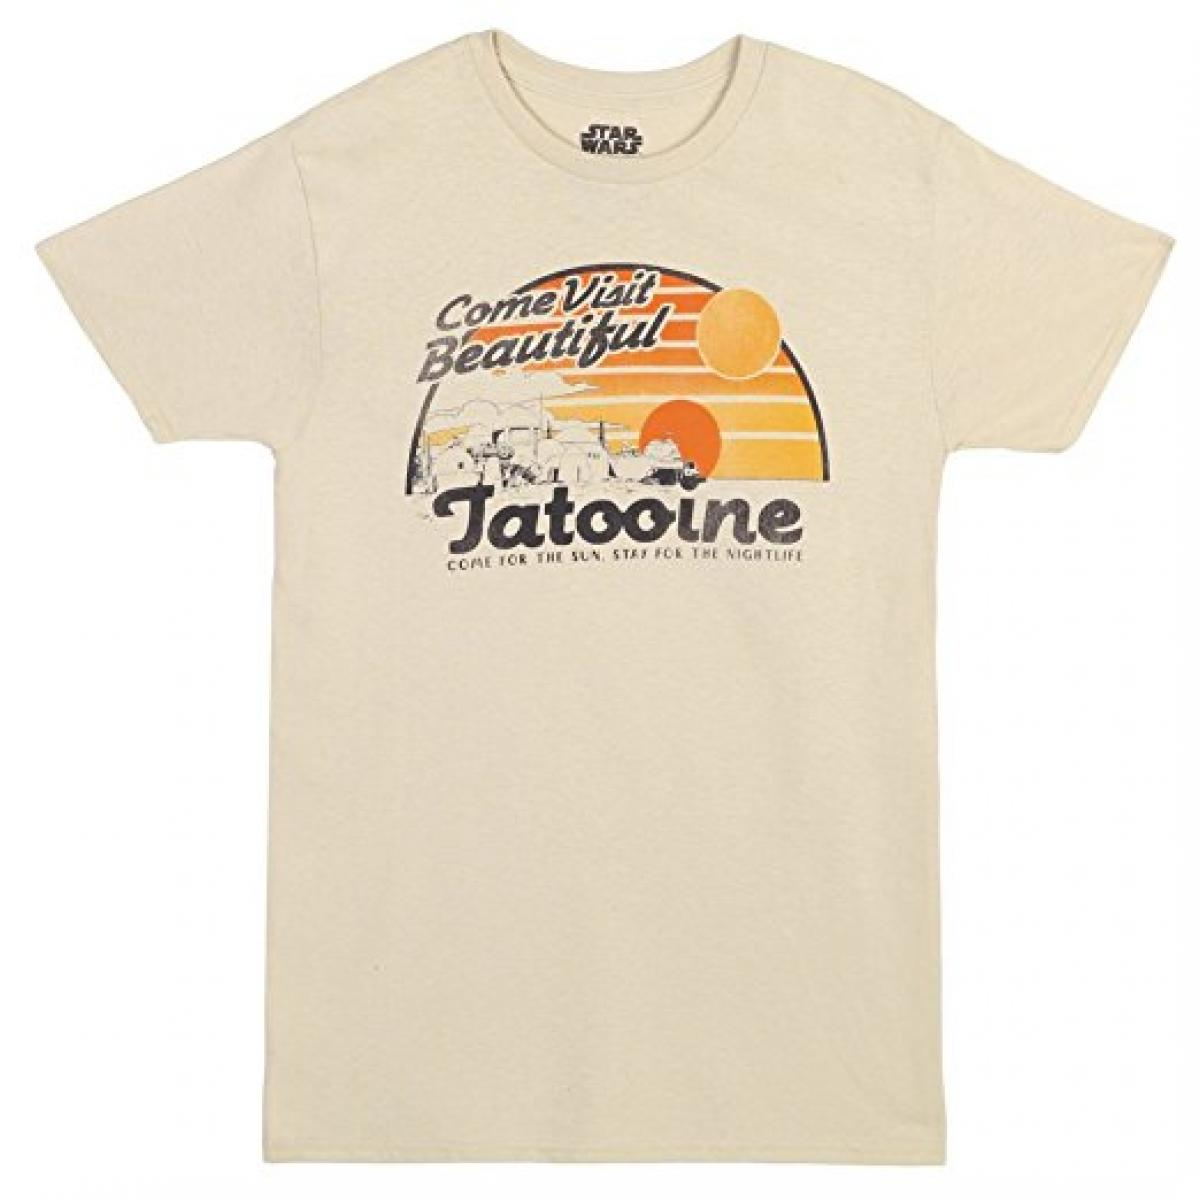 Star Wars Visit Beautiful Tatooine T-shirt